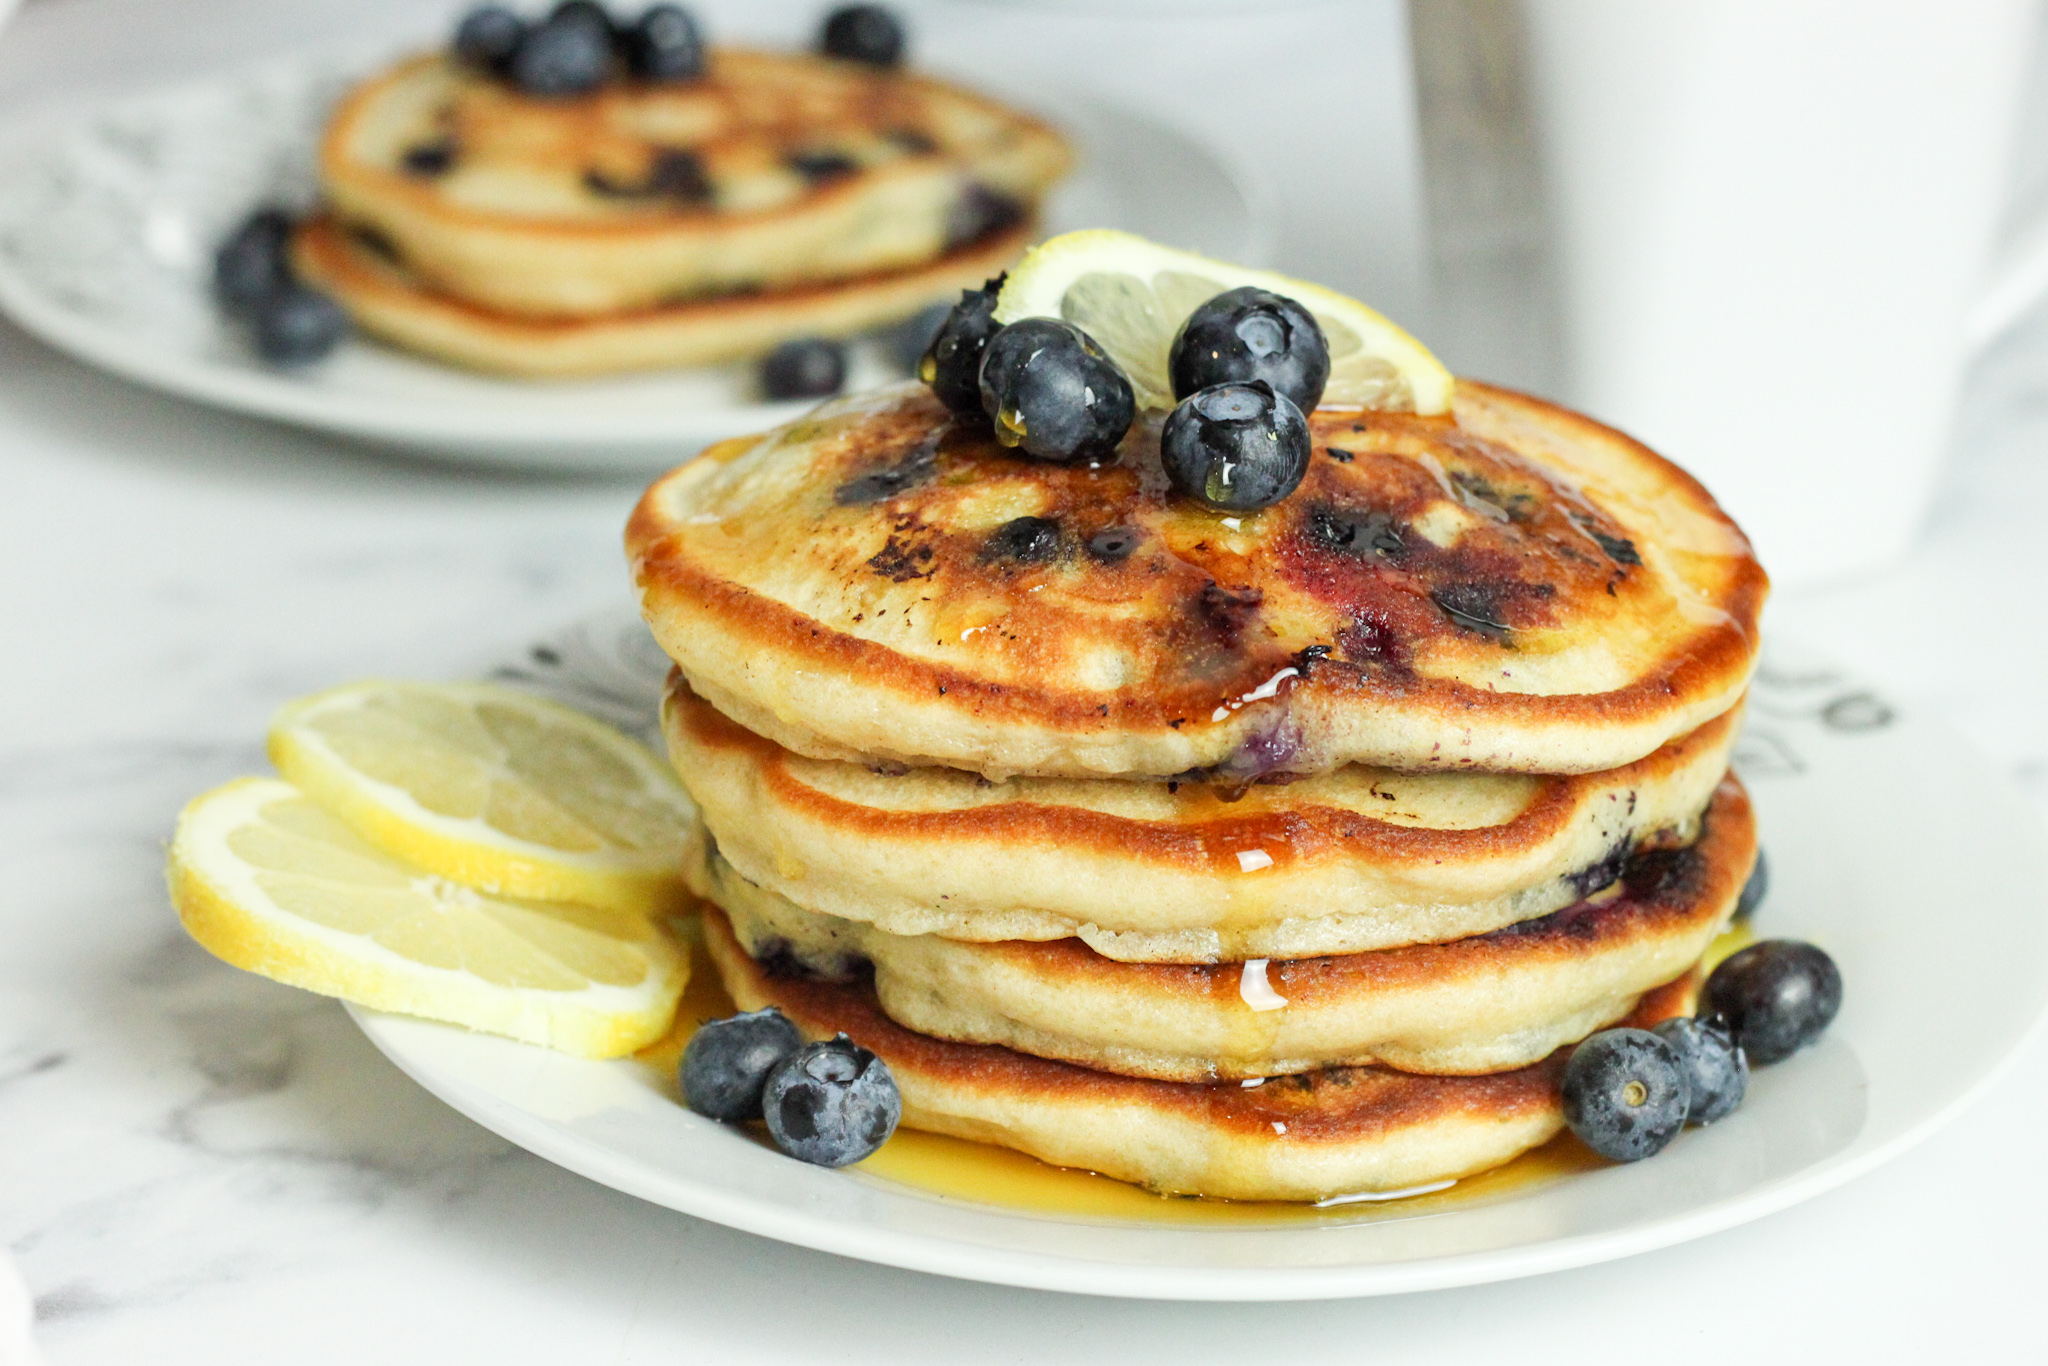 How to Make Lemon Blueberry Pancakes